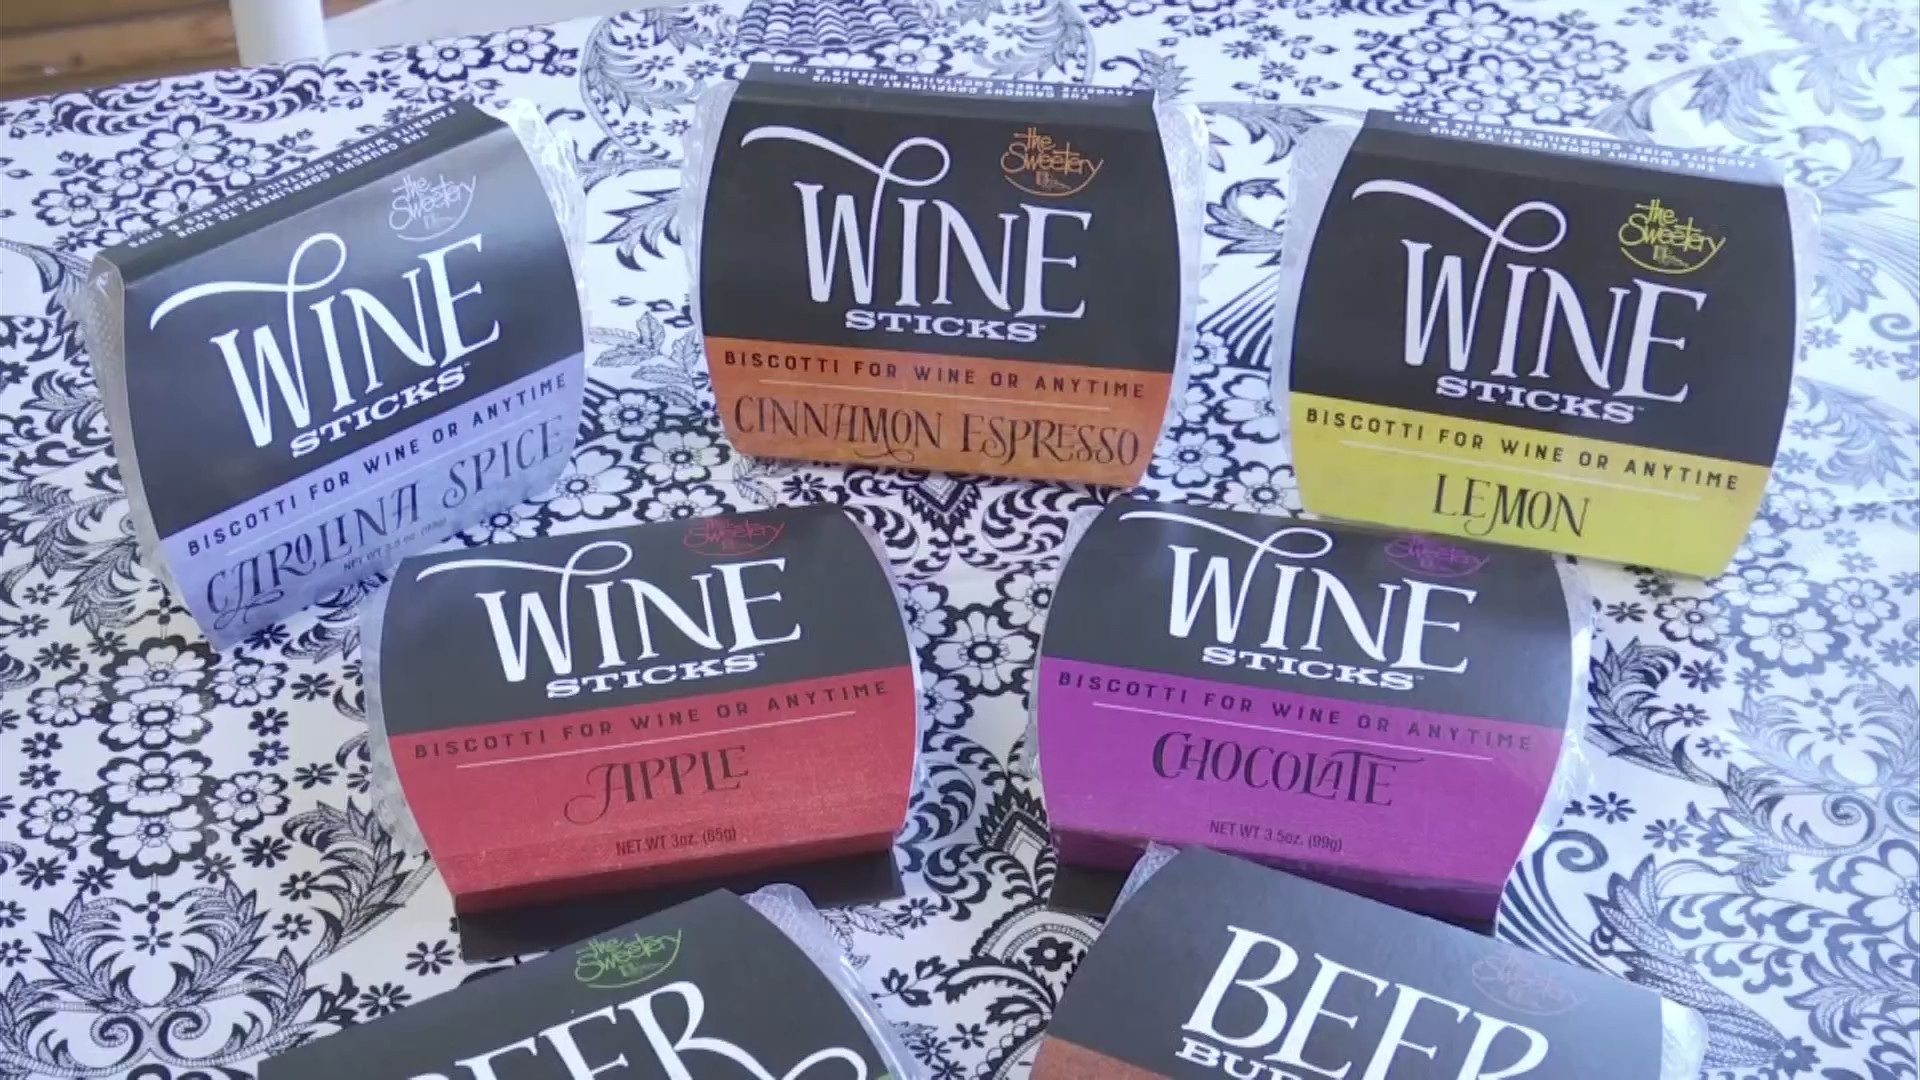 Anderson bakery bringing snack size wine sticks to NYC trade show